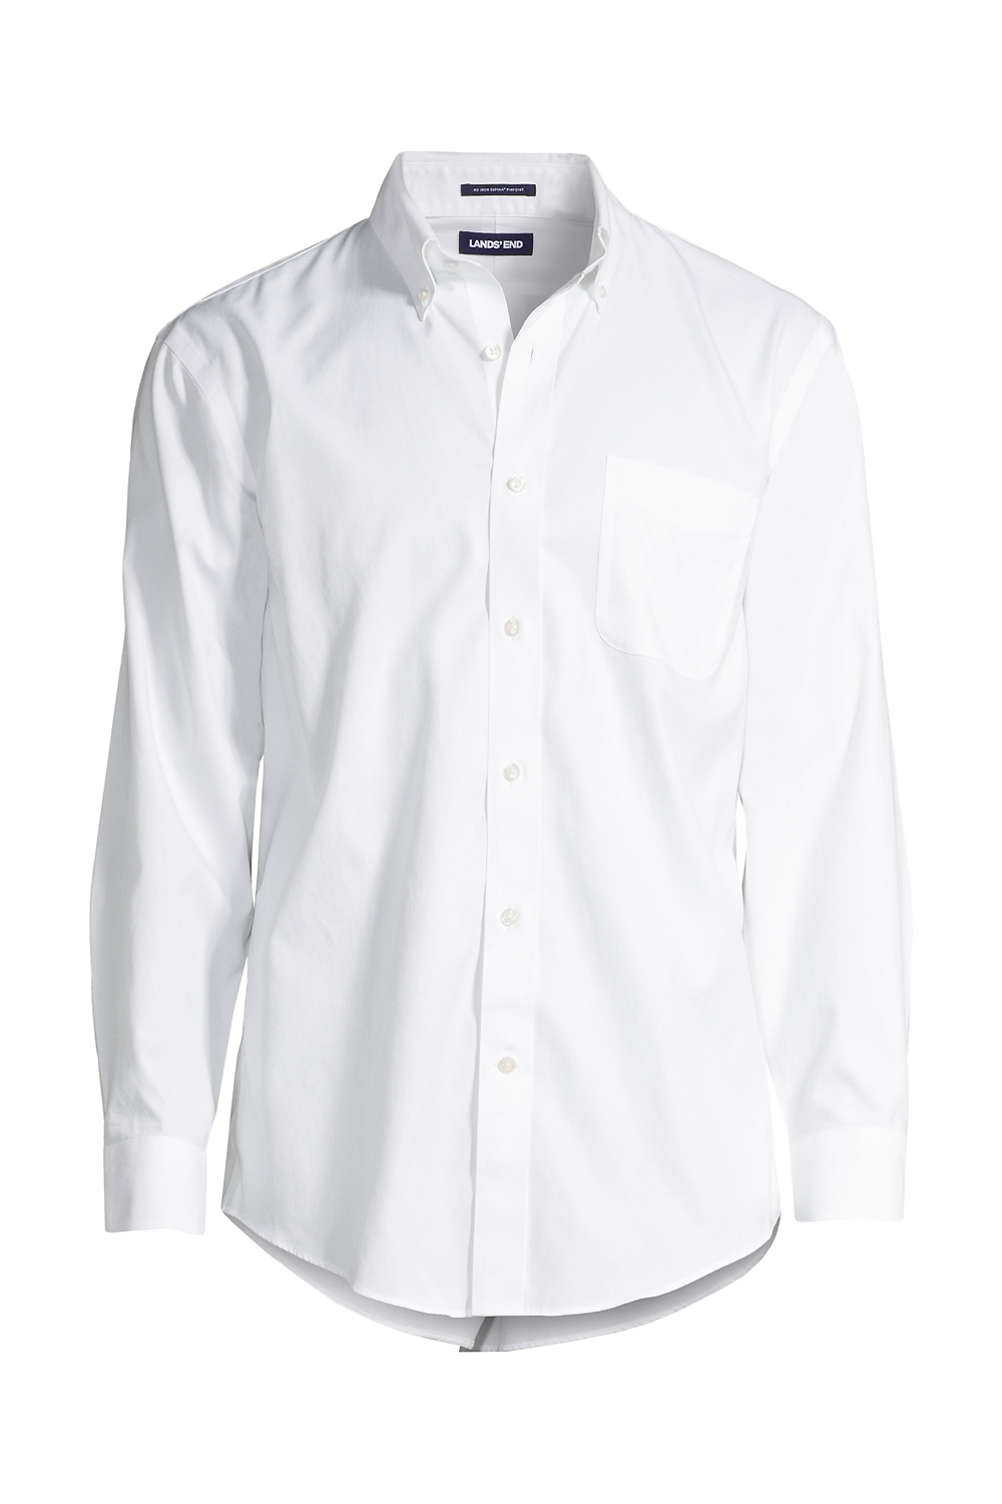 3b981e8b2aaed Men's Solid No Iron Supima Pinpoint Buttondown Collar Dress Shirt ...